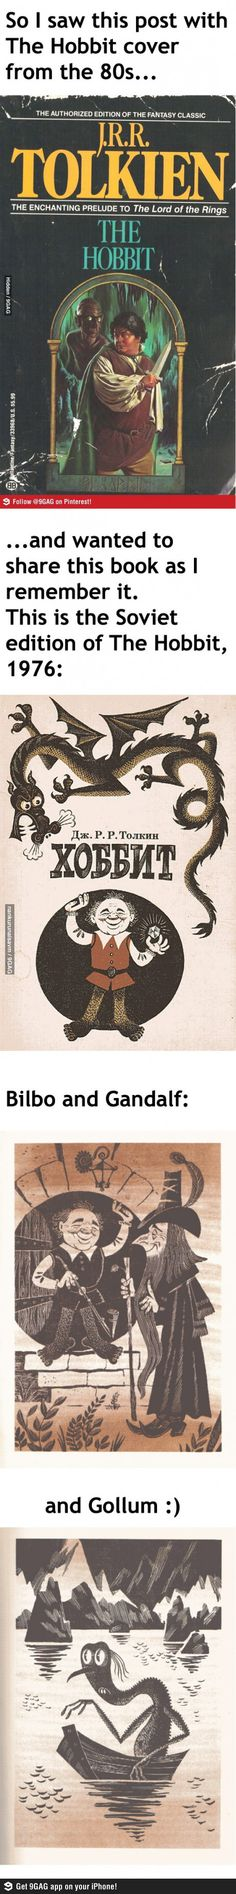 The Soviet edition of 'The Hobbit'... Gollum made me laugh way too hard!